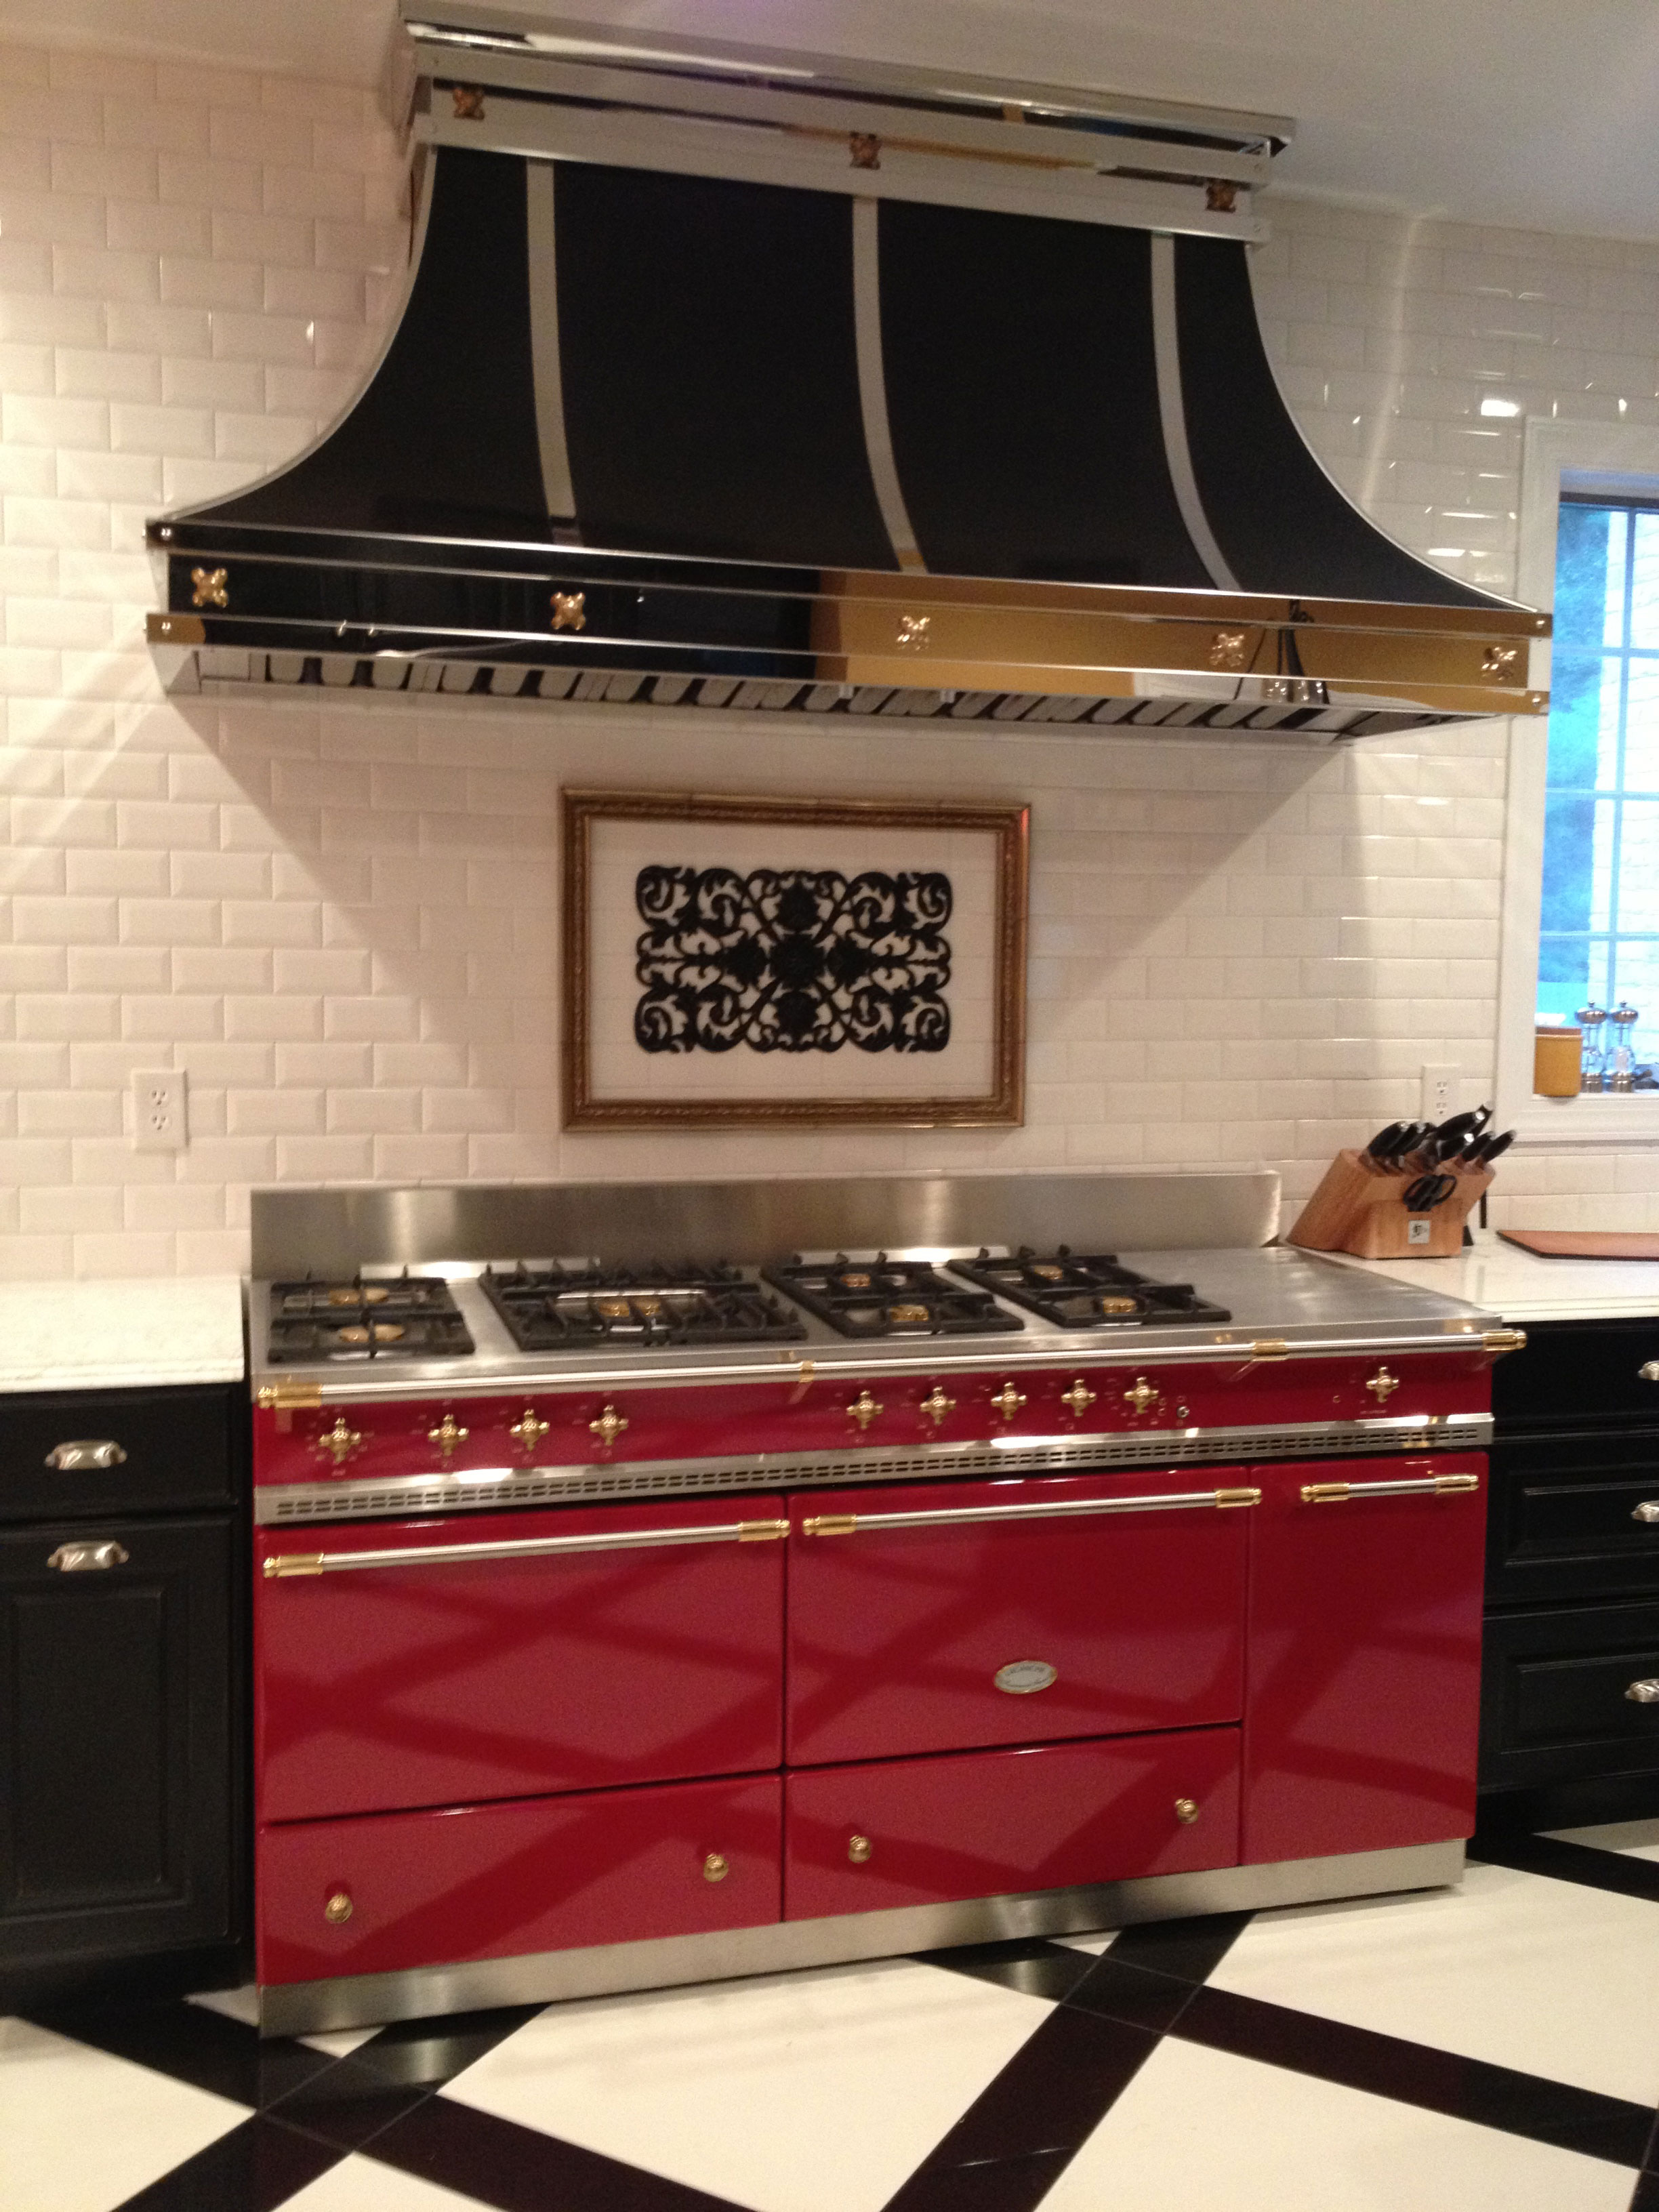 Sully 1800 Cooking Range